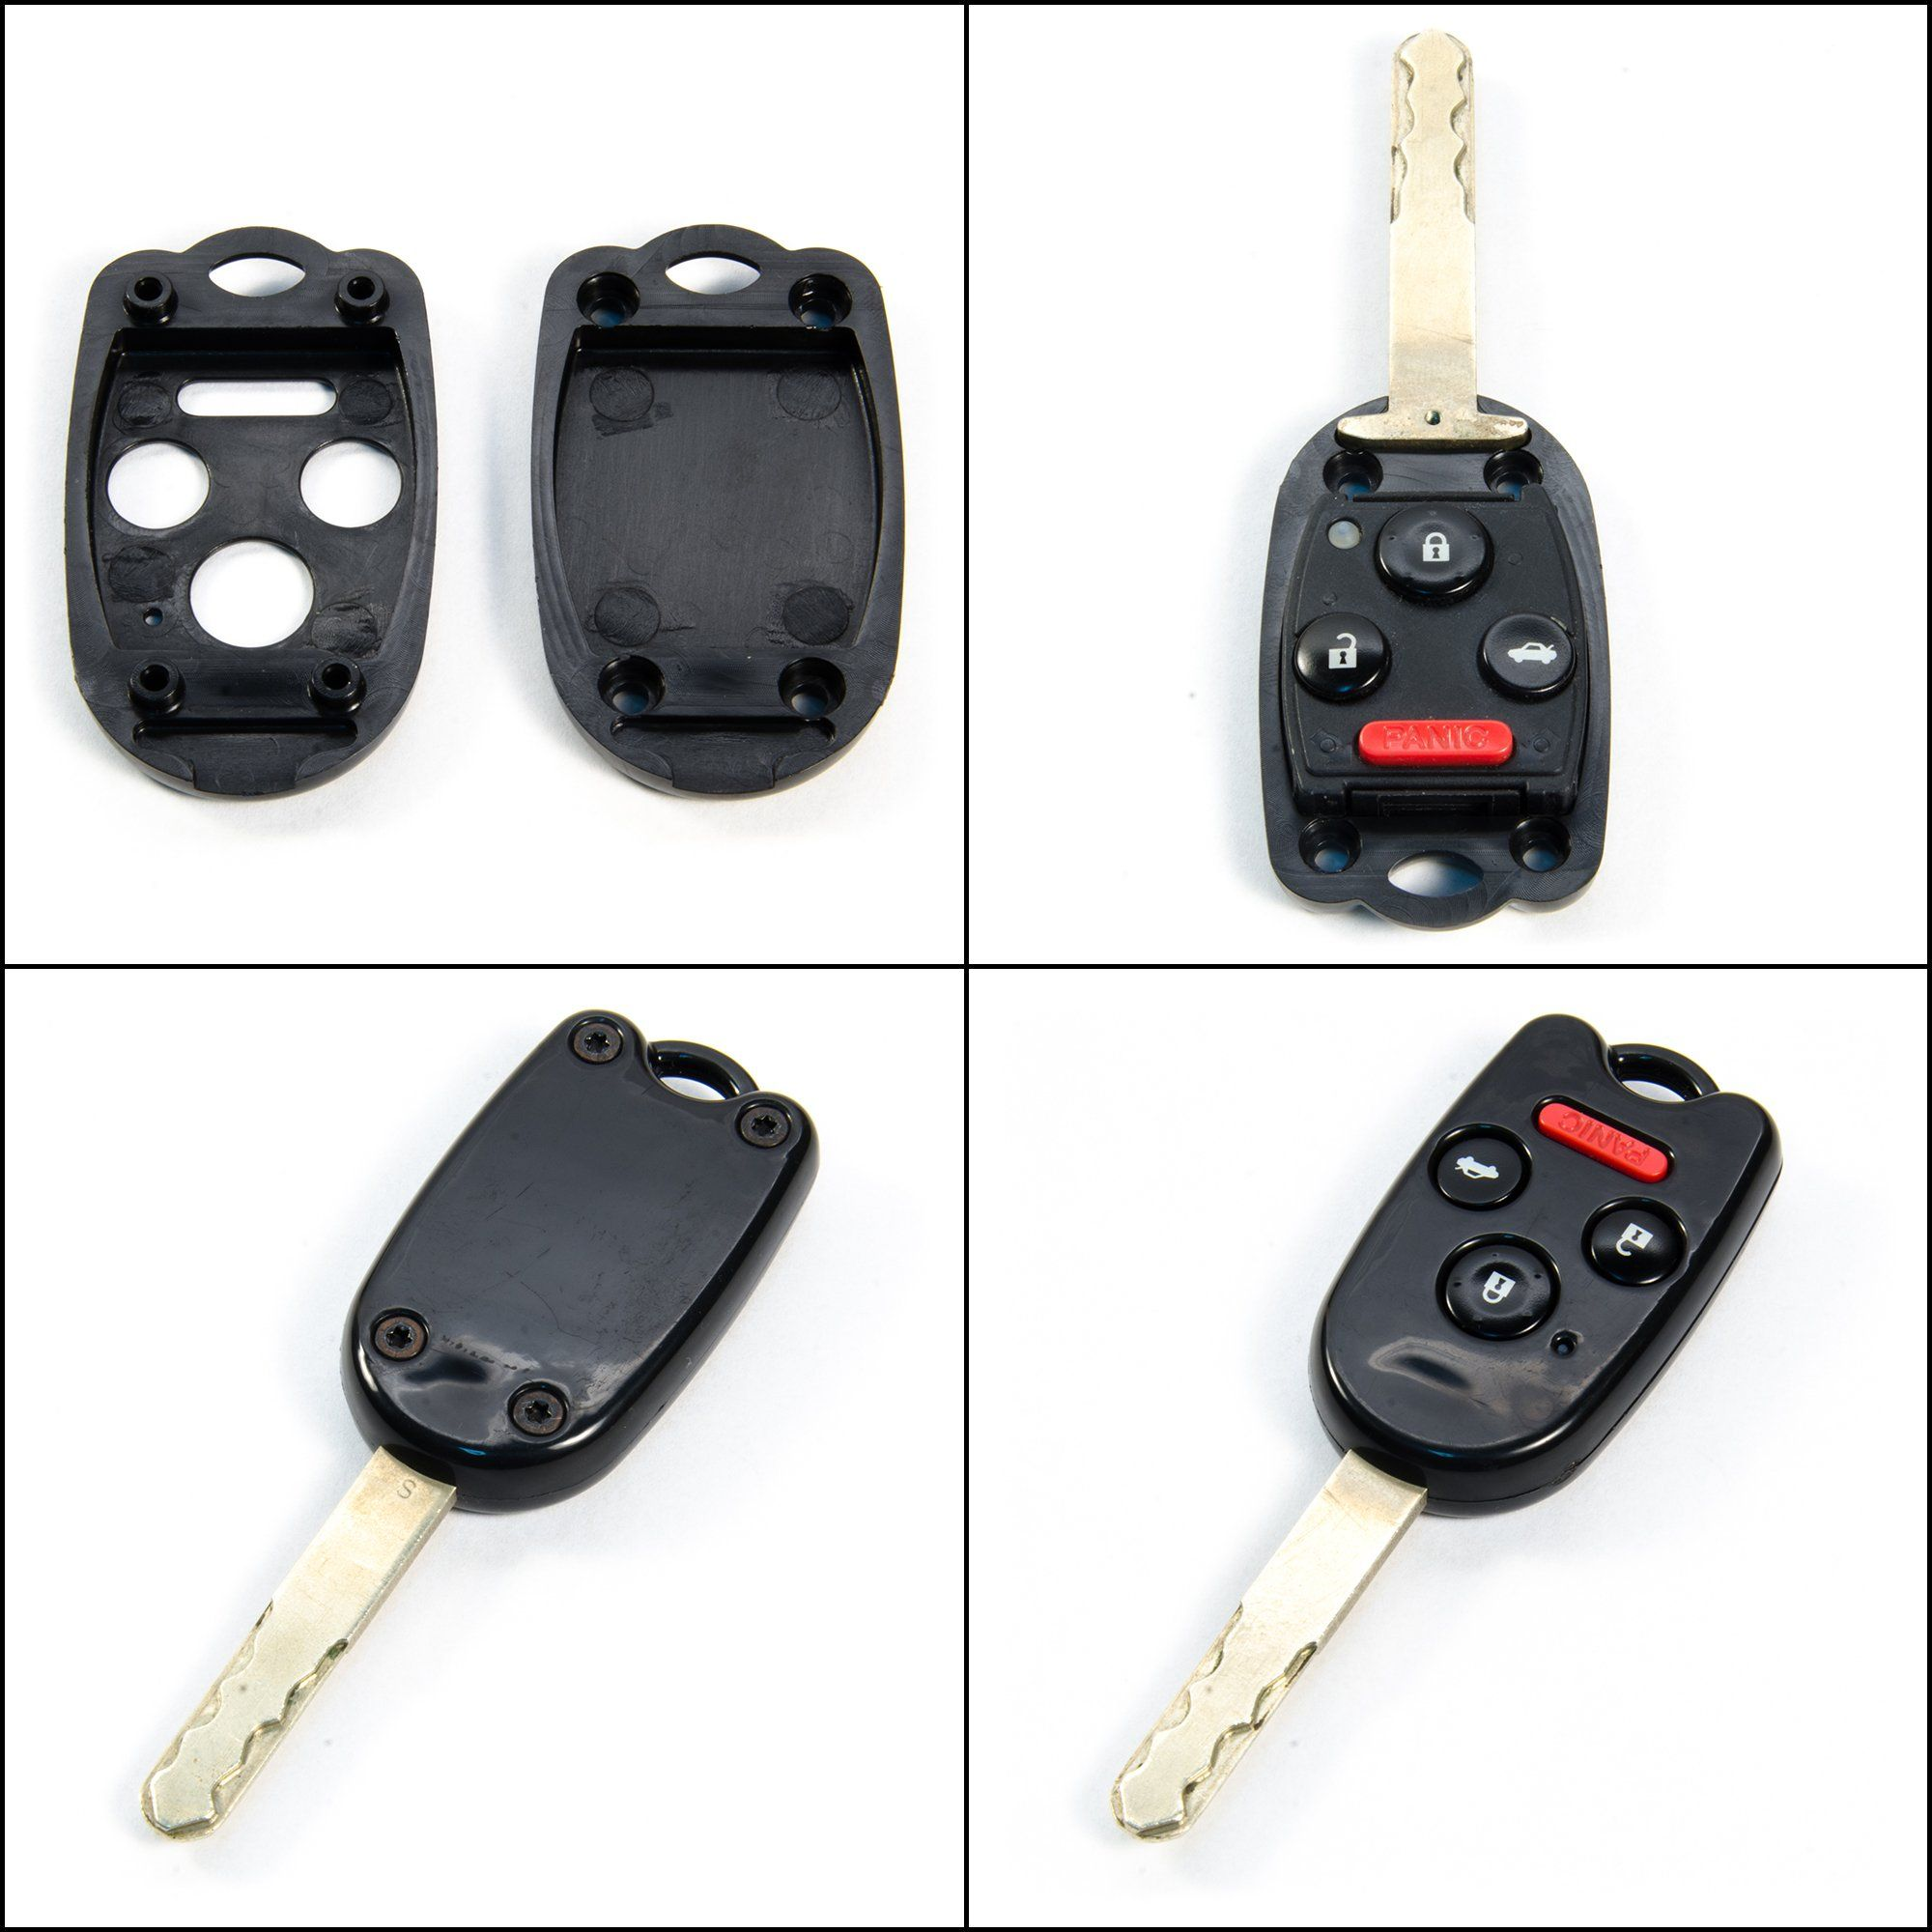 Stauber Best Honda Key Shell Rep Honda Key Key Replacement Honda